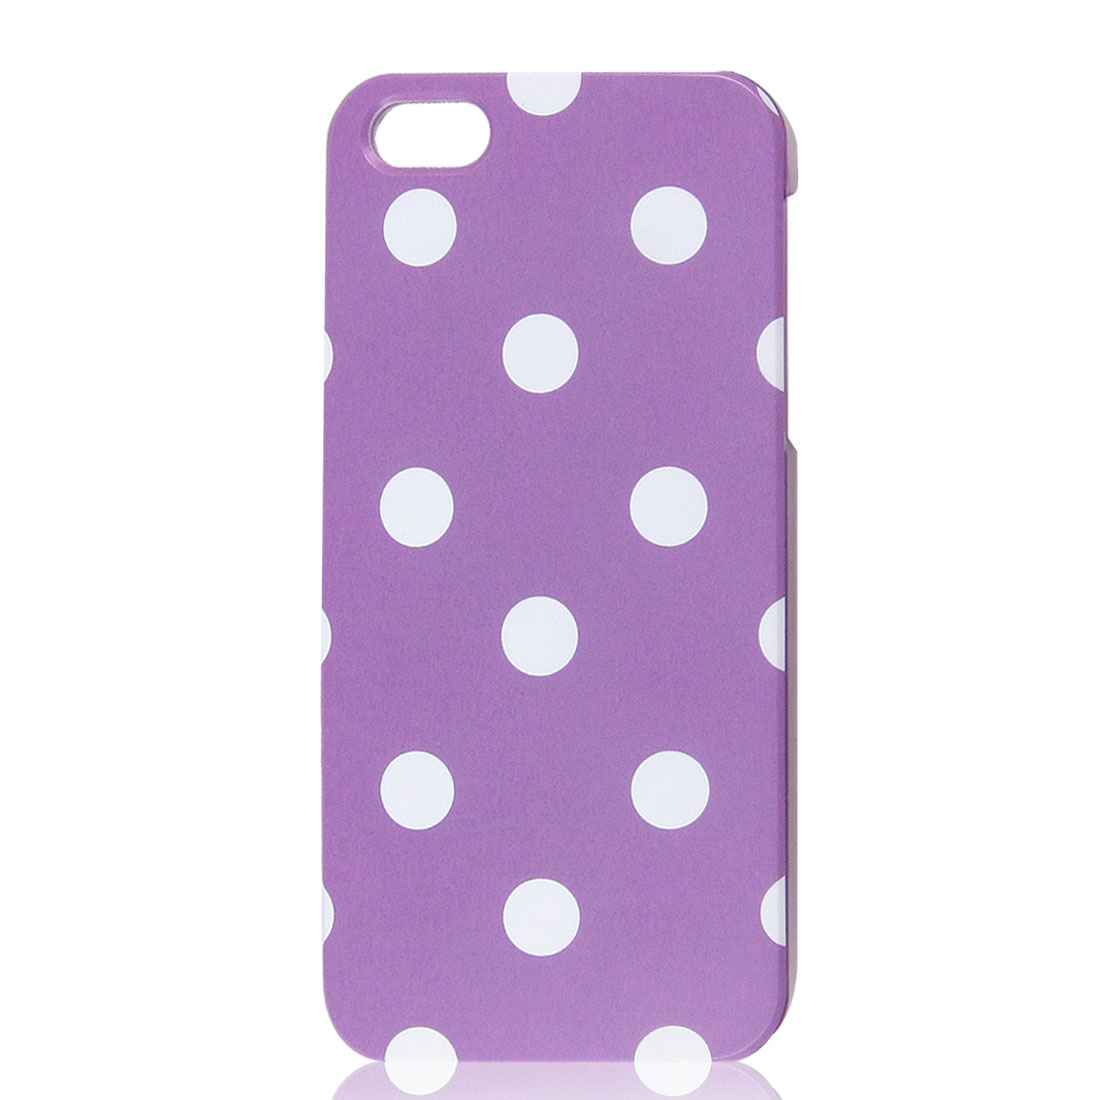 White Polka Dots Purple Phone Hard Back Case Cover for Apple iPhone 5 5G